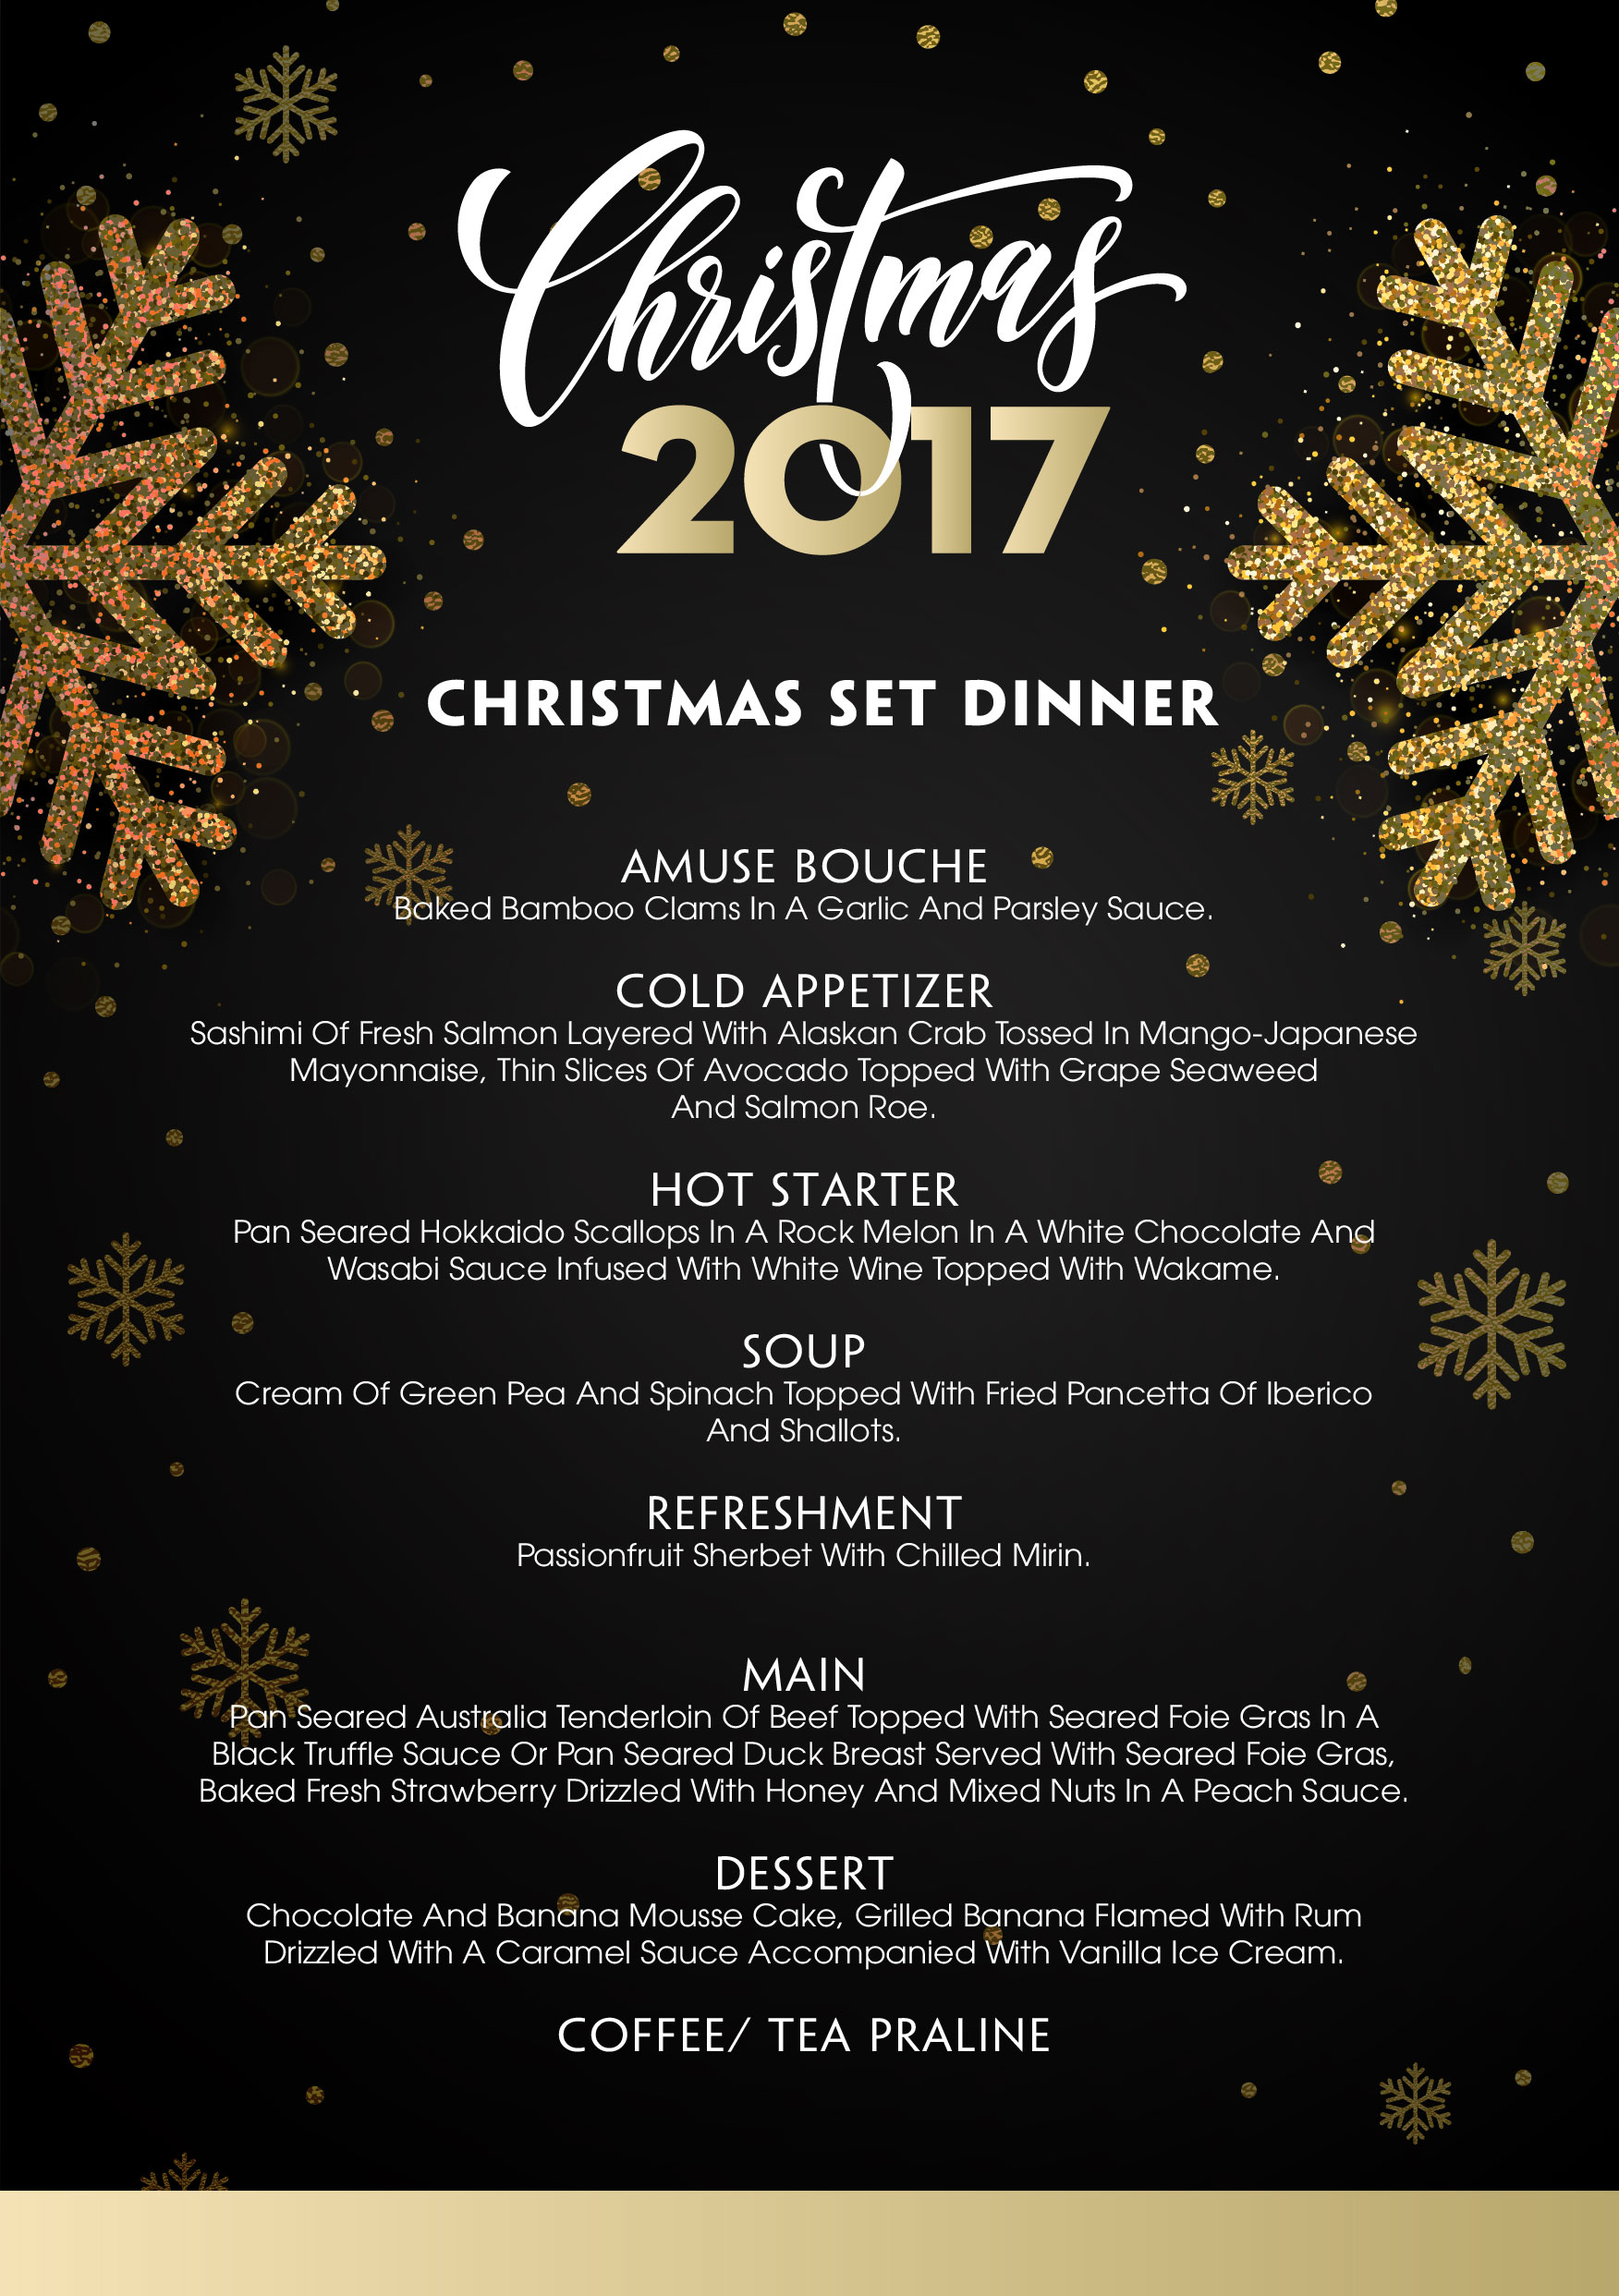 Christmas 2017 set menu